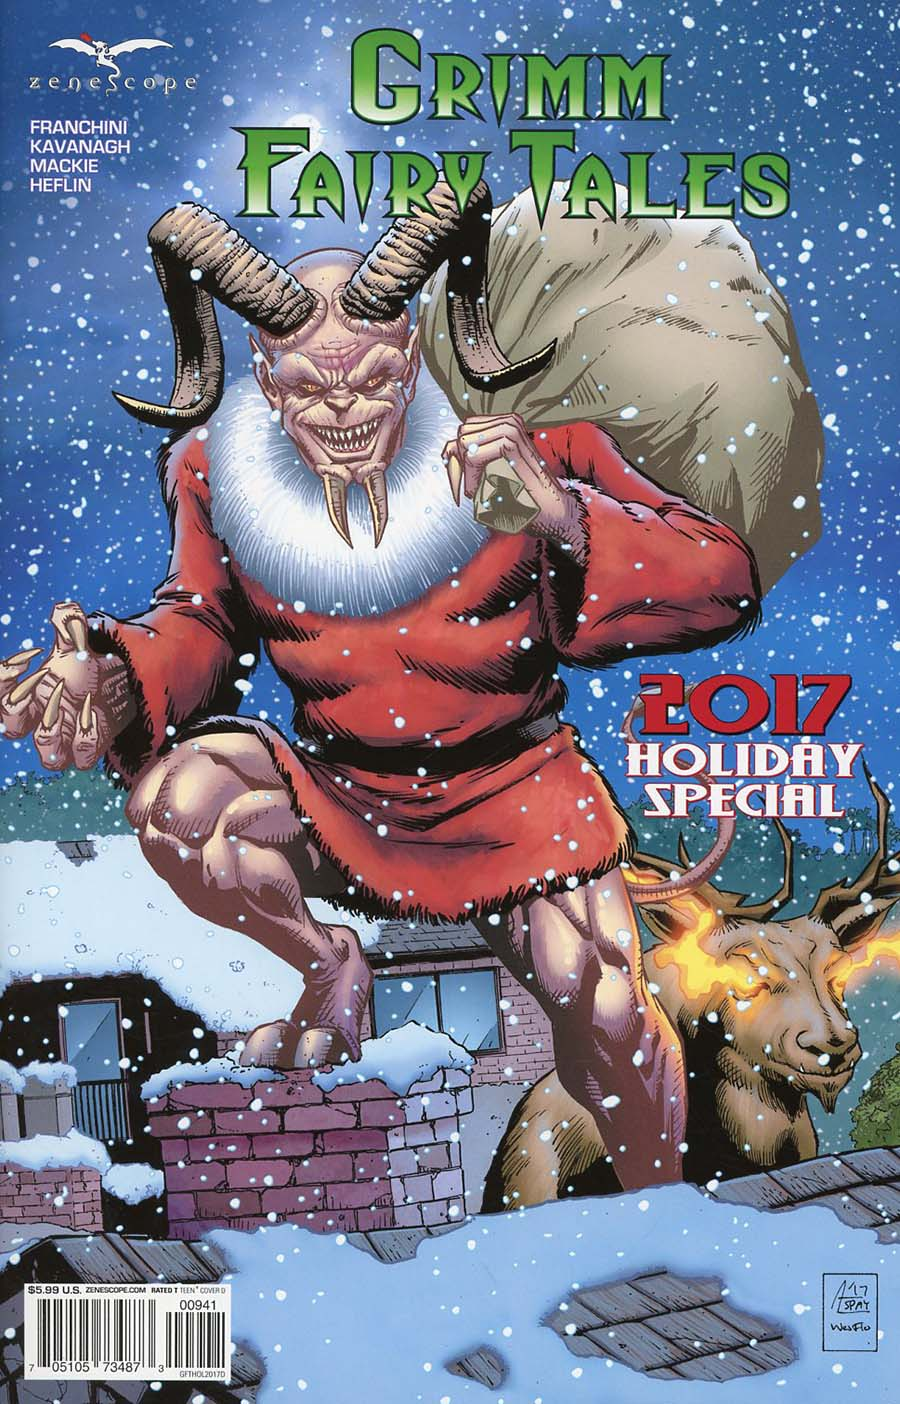 Grimm Fairy Tales 2017 Holiday Special Cover D Anthony Spay